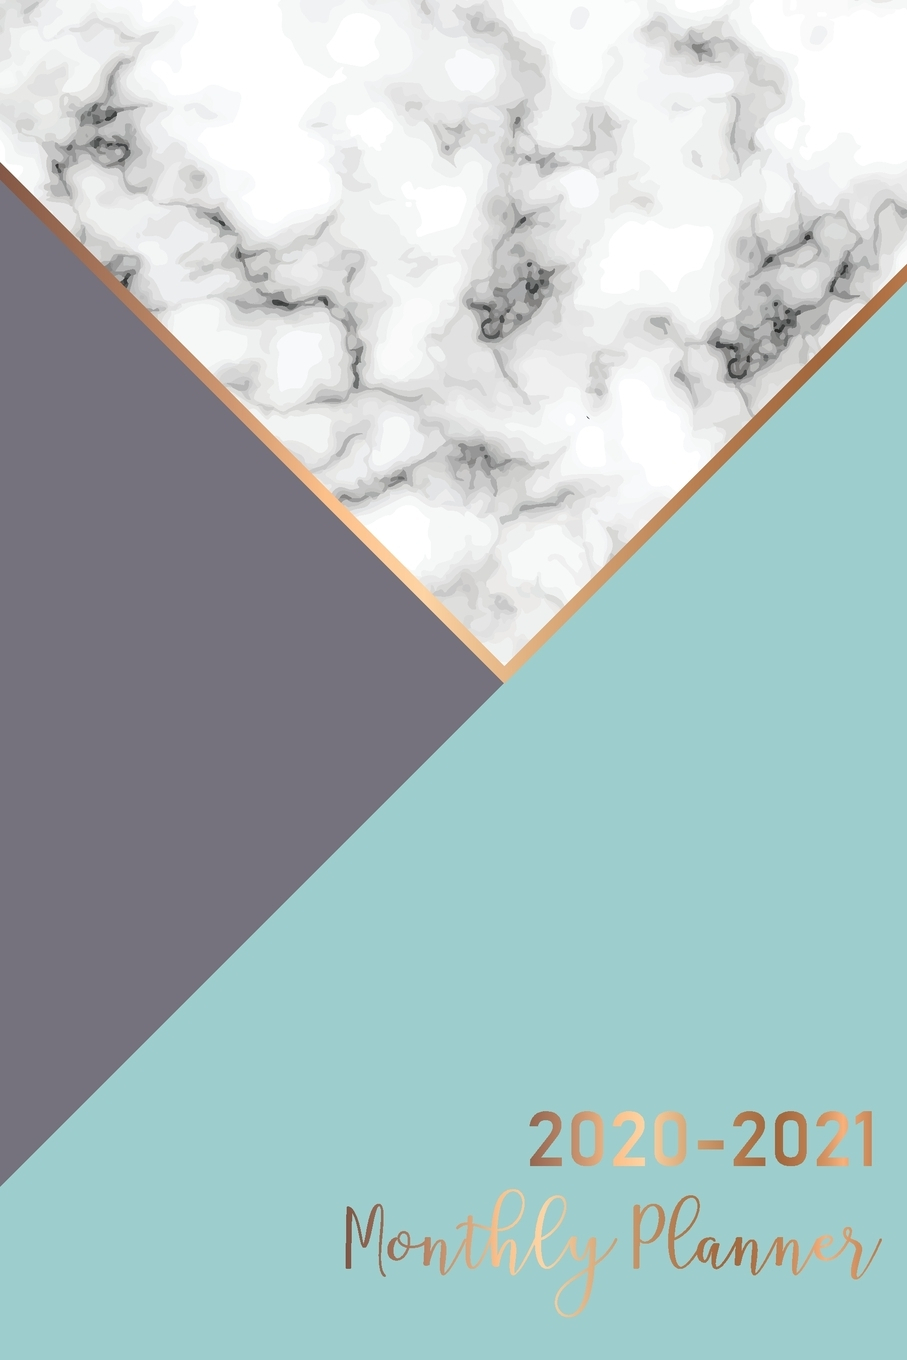 2020-2021 Daily Monthly Calendar Pocket Planner, 24 Months Jan 2020 To Dec  2021: 2020-2021 Monthly Planner: Marble Cover - 2 Year Calendar 2020-2021 inside 2021-2021 2 Year Pocket Planner: 2 Year